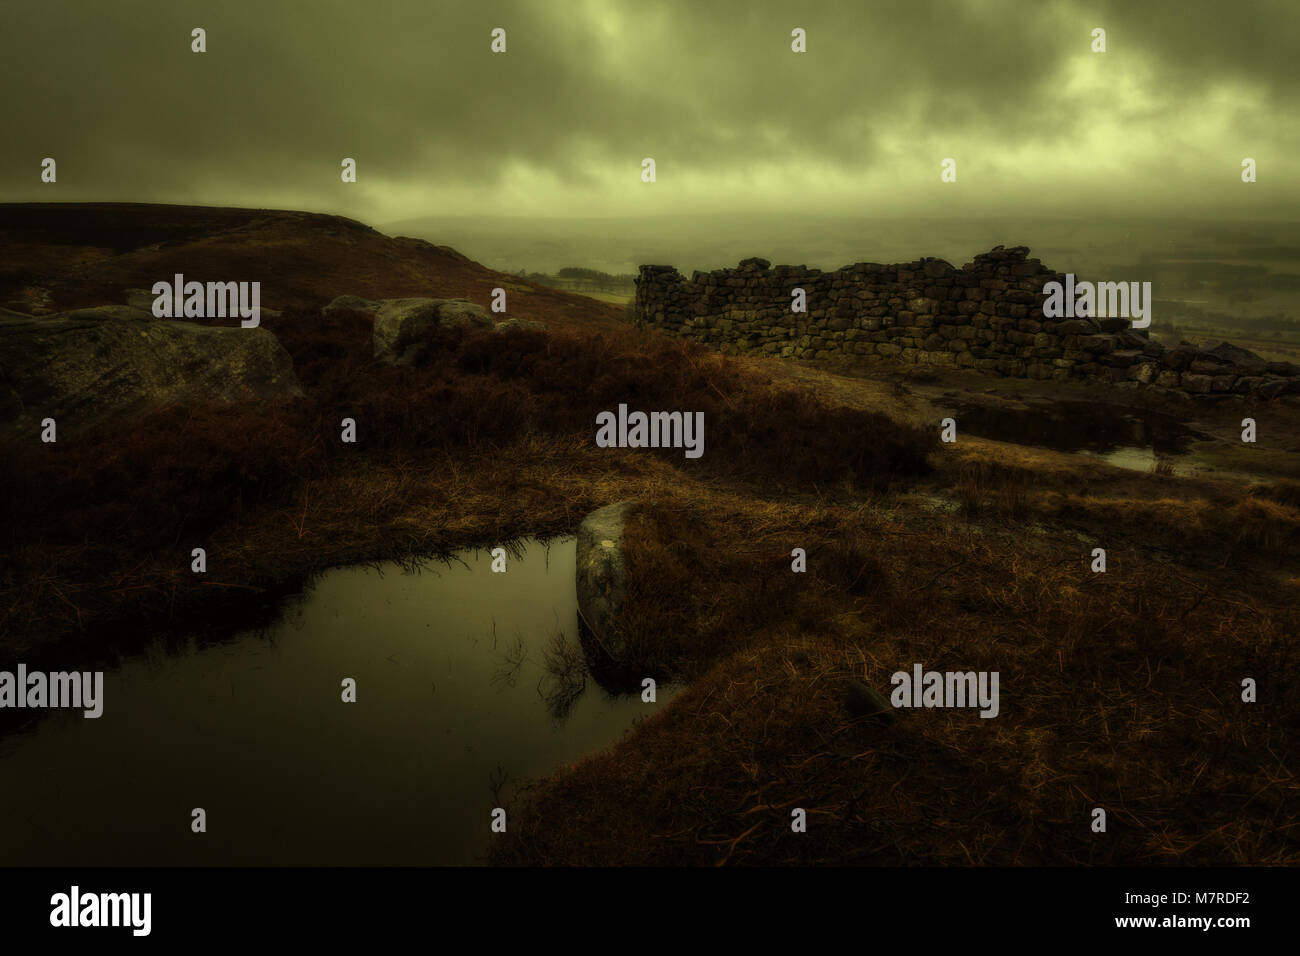 Moody and atmospheric scene of a damp moorland day with stone wall - Stock Image